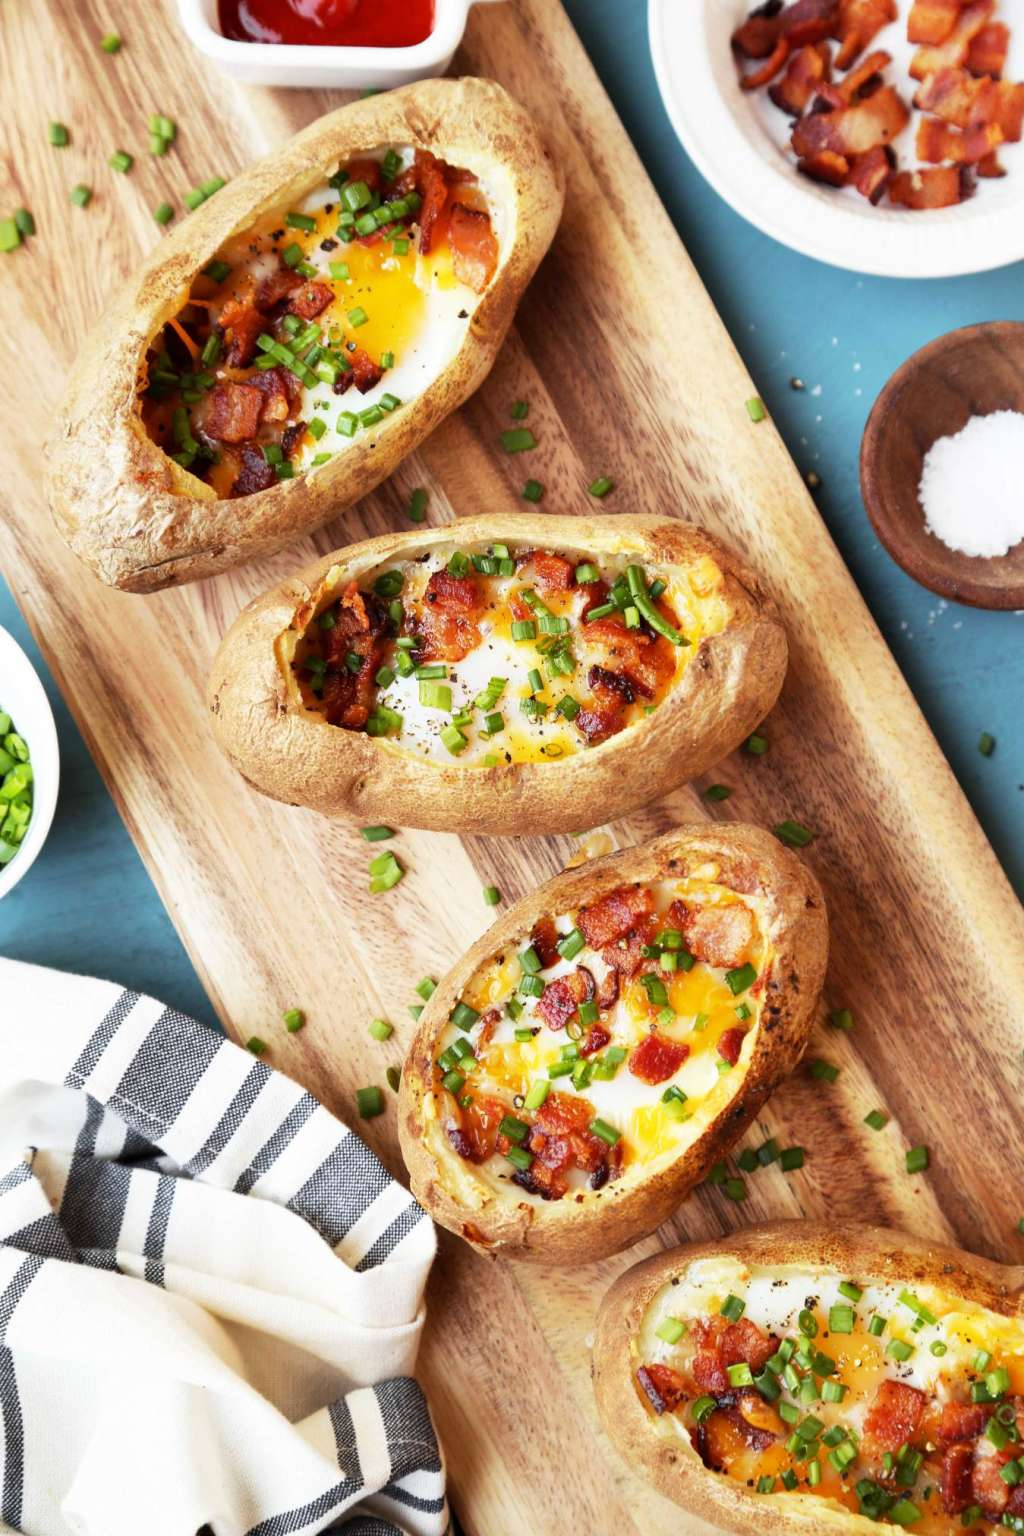 These Breakfast Baked Potatoes Are Calling Your Name